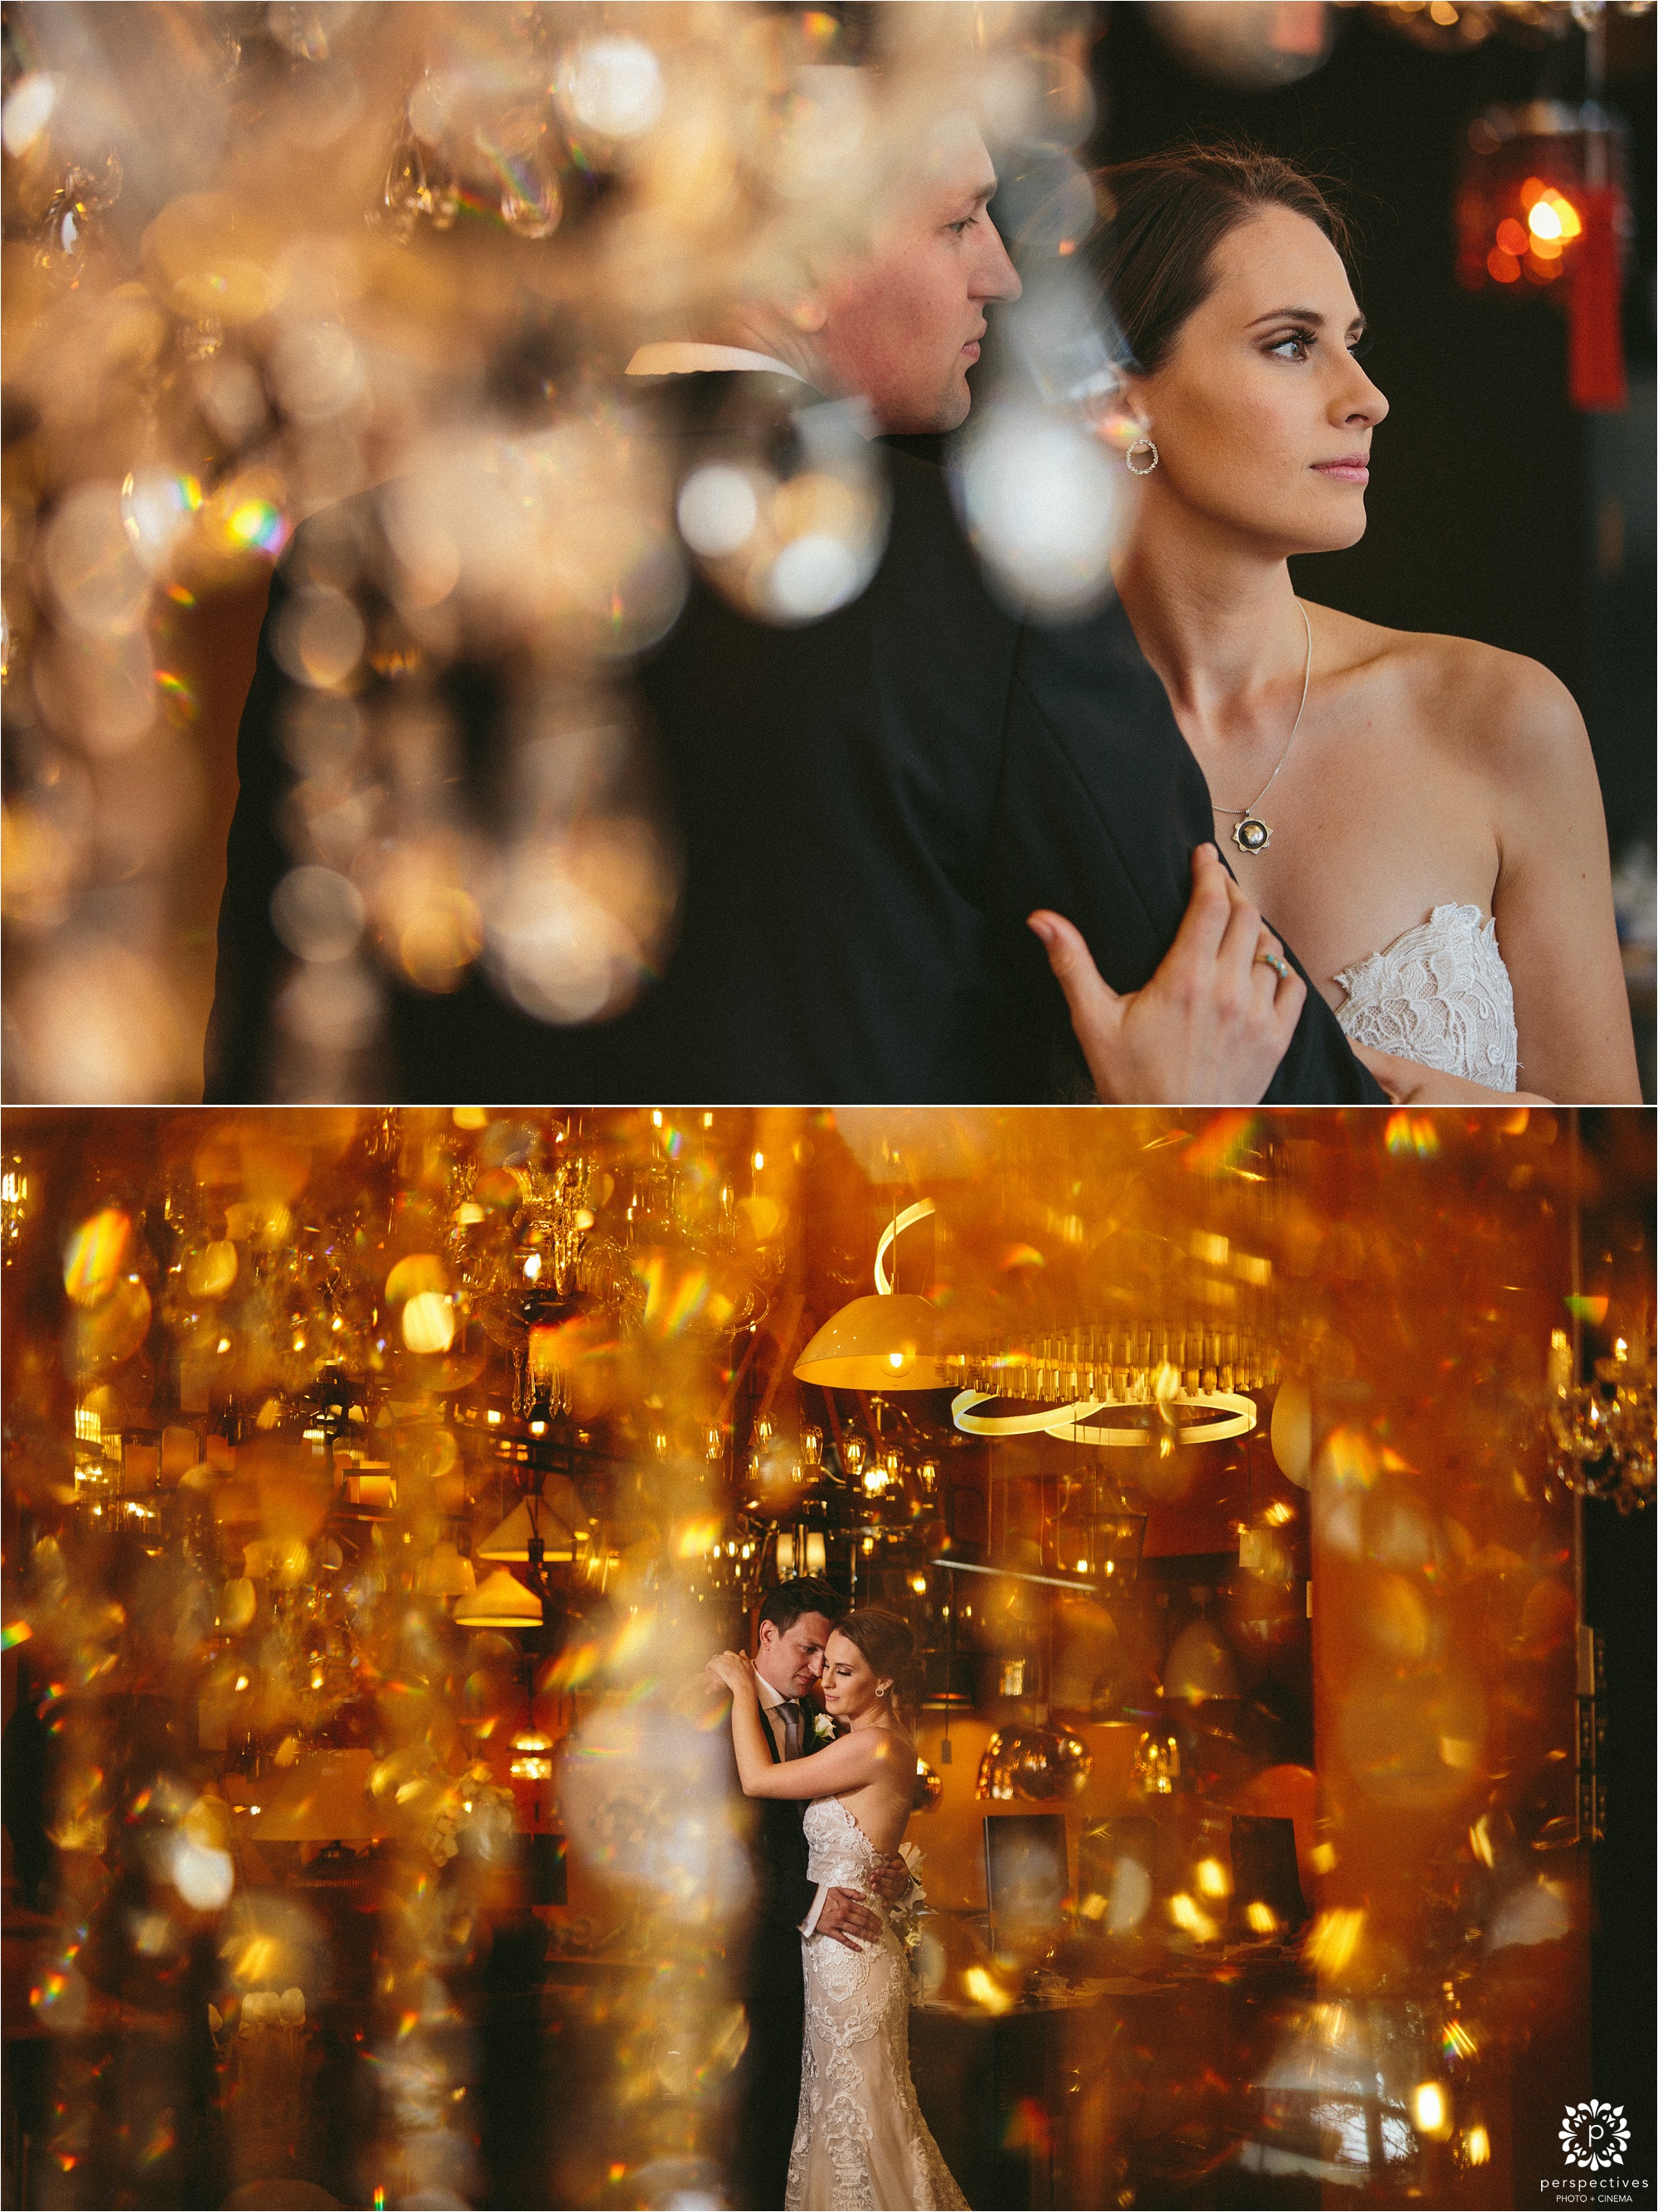 romantic wedding photos indoor lighting